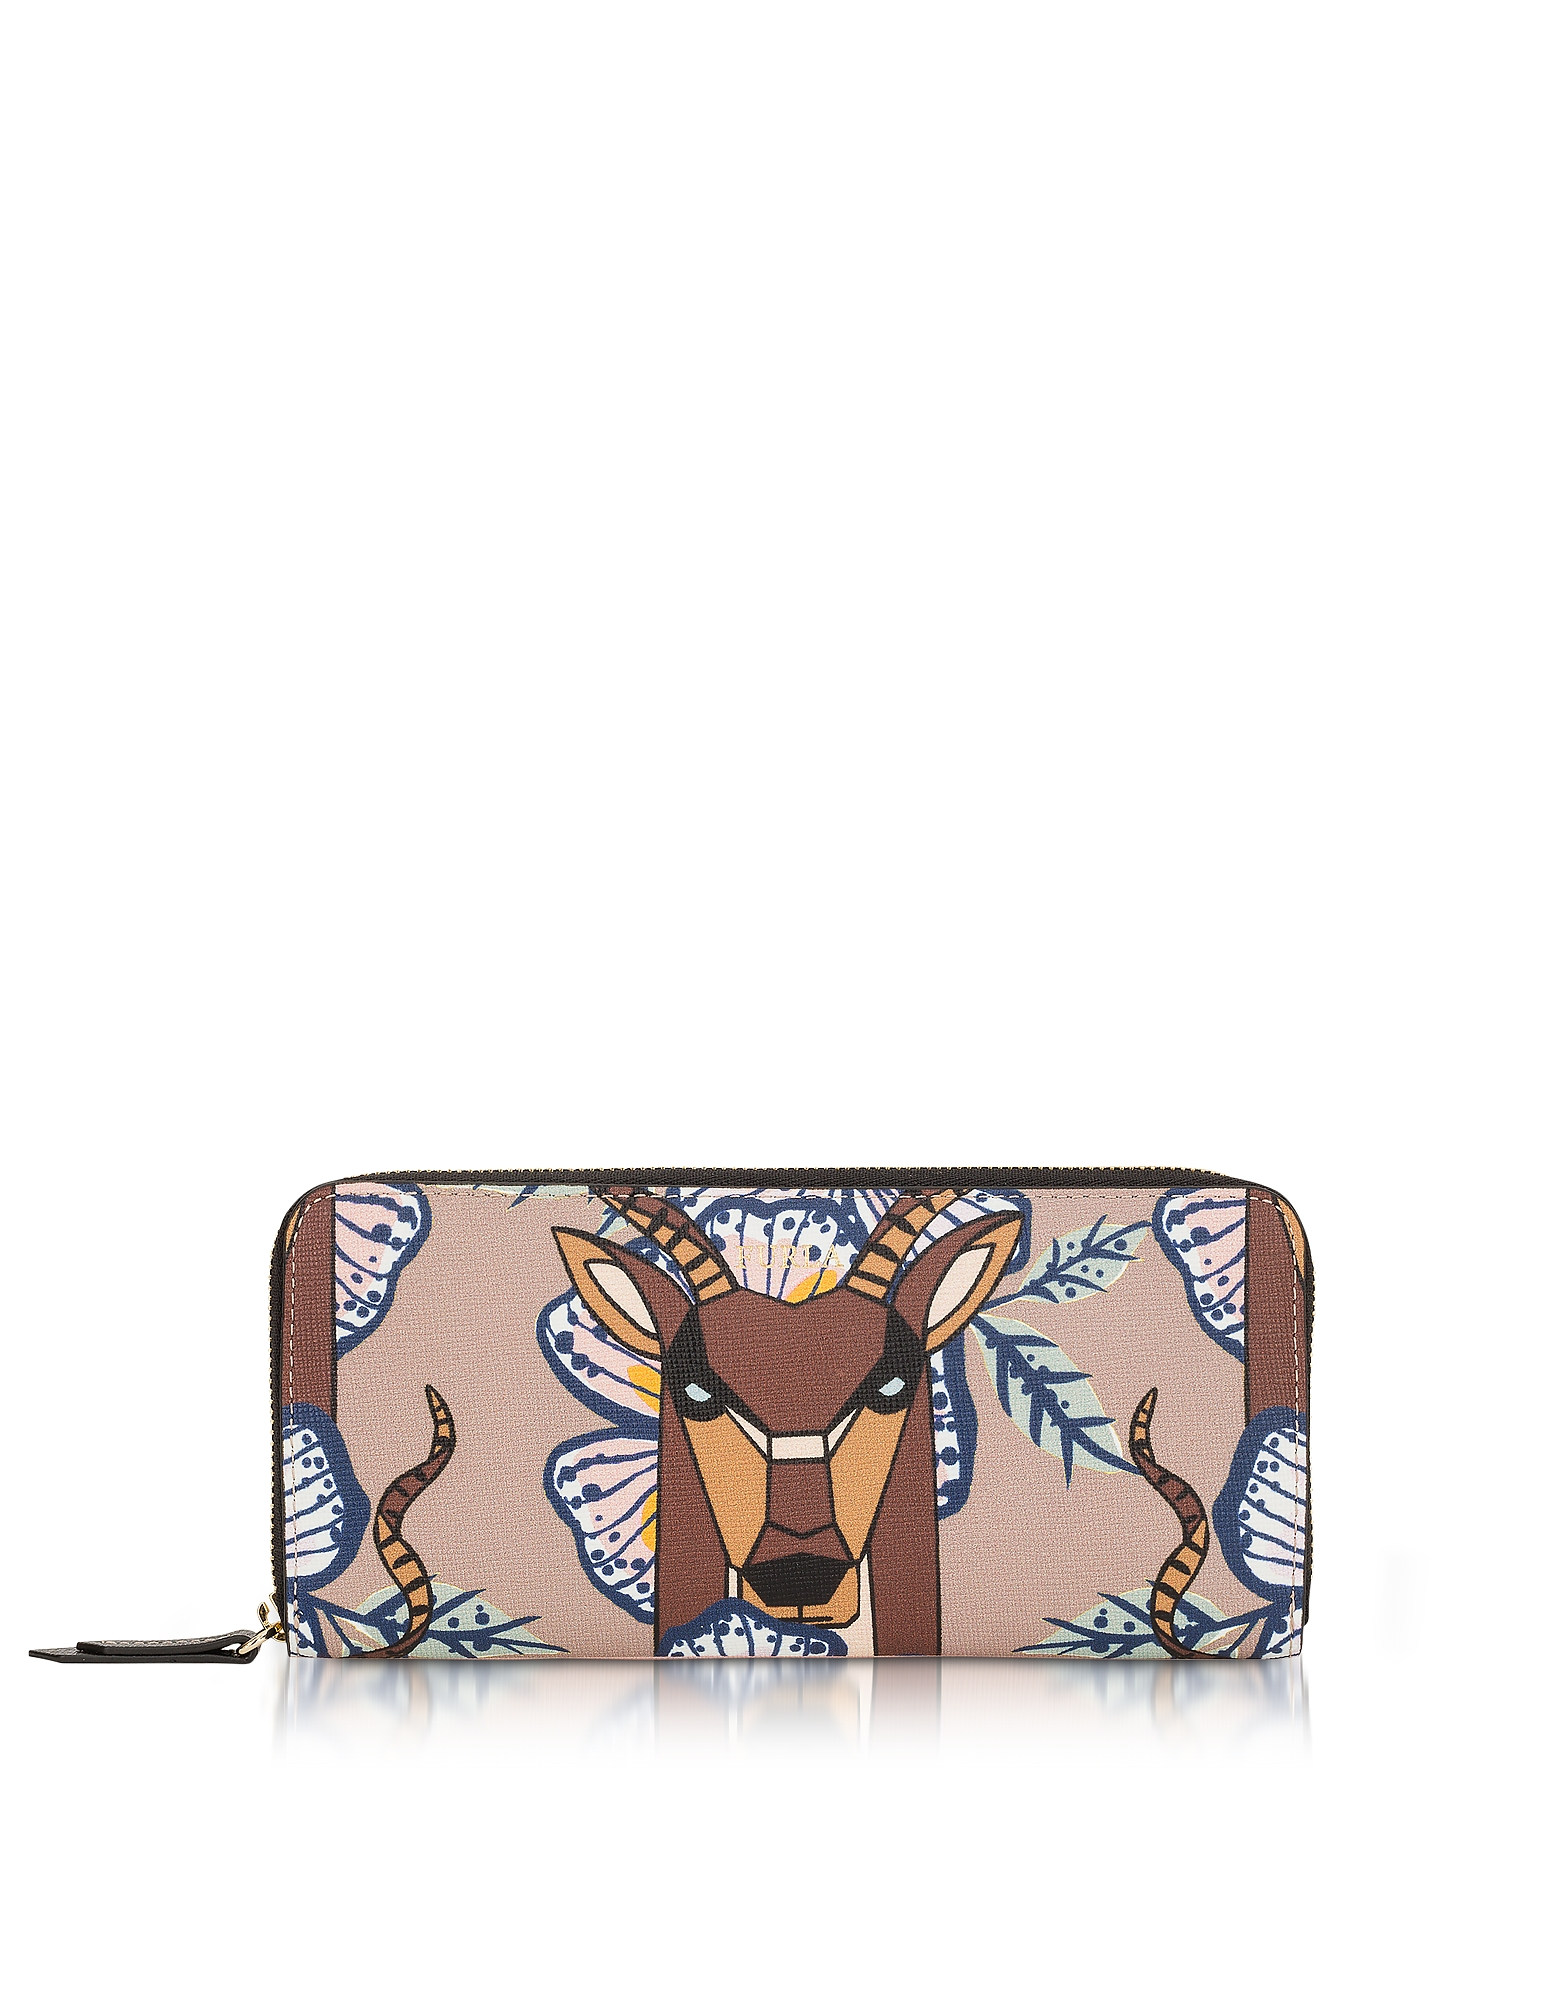 Furla Handbags, Antilope and Tropicana Gioia XL Zip Around Saffiano Leather Wallet